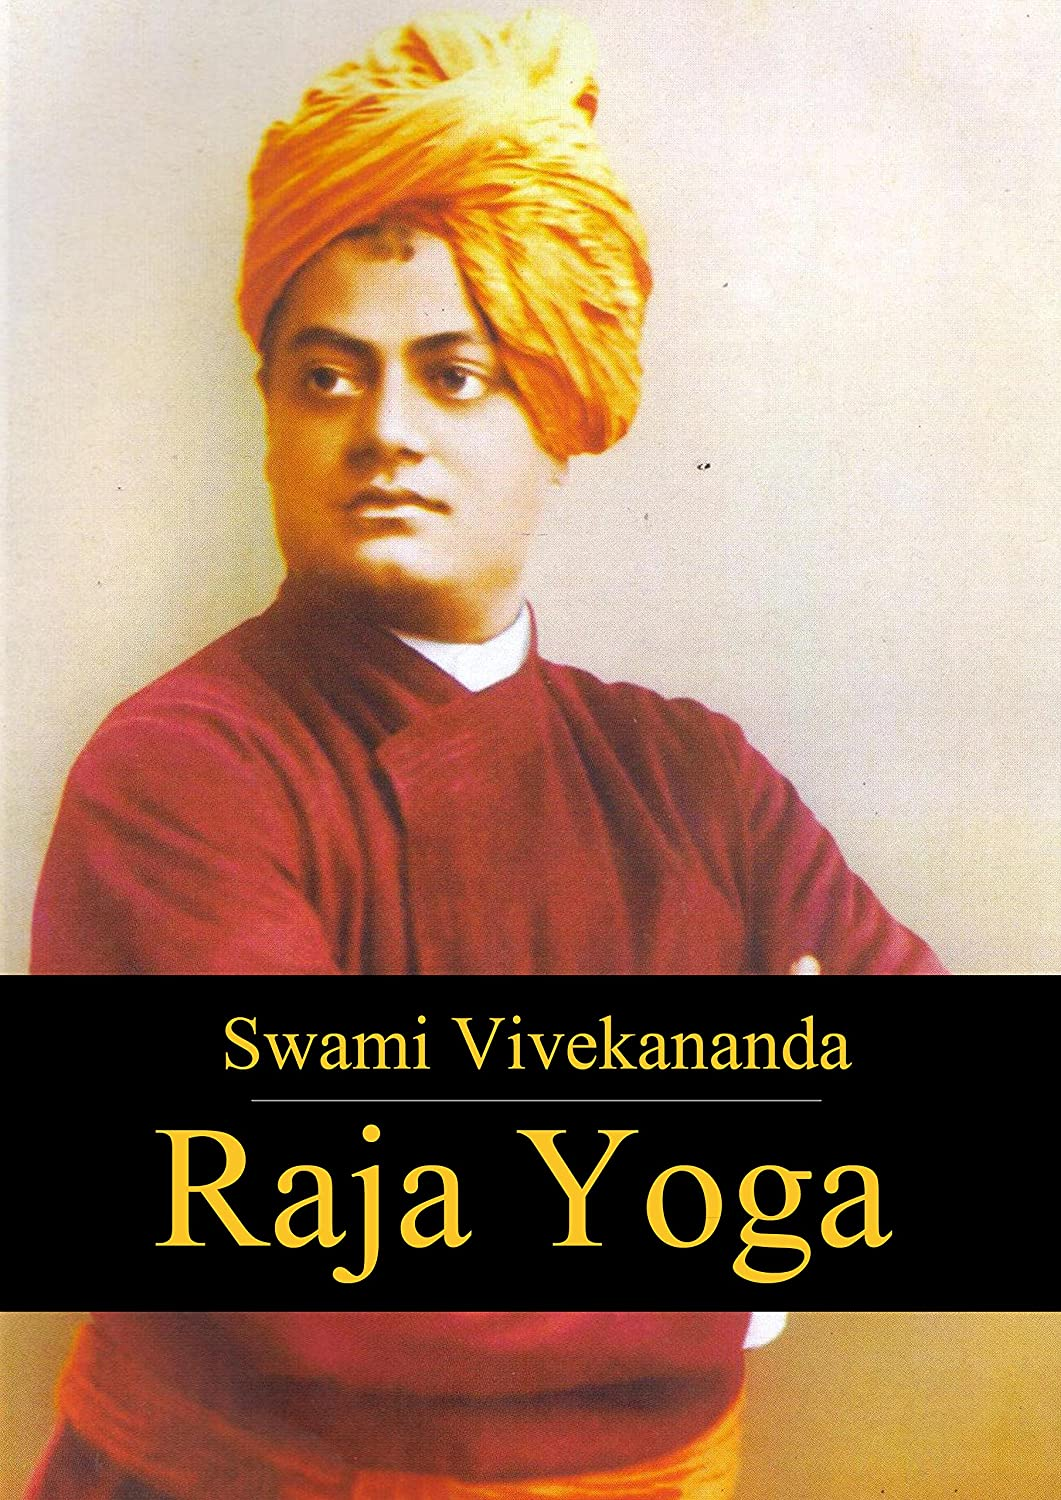 Raja Yoga (English Edition) eBook: Swami Vivekananda: Amazon ...